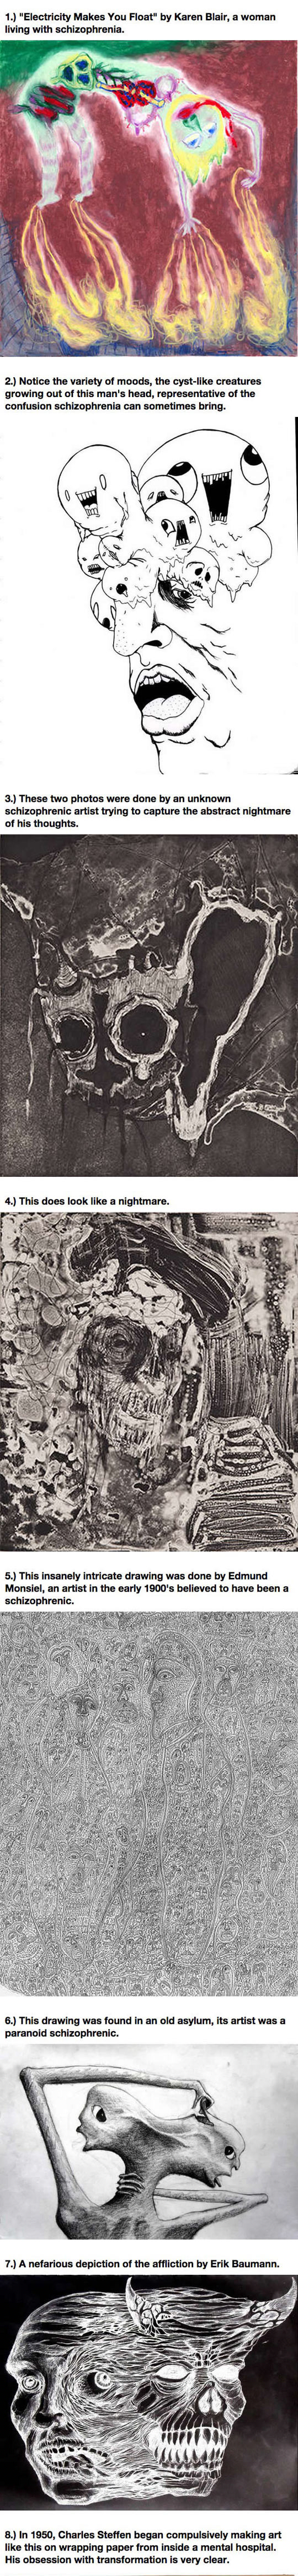 Art Made By People With Schizophrenia